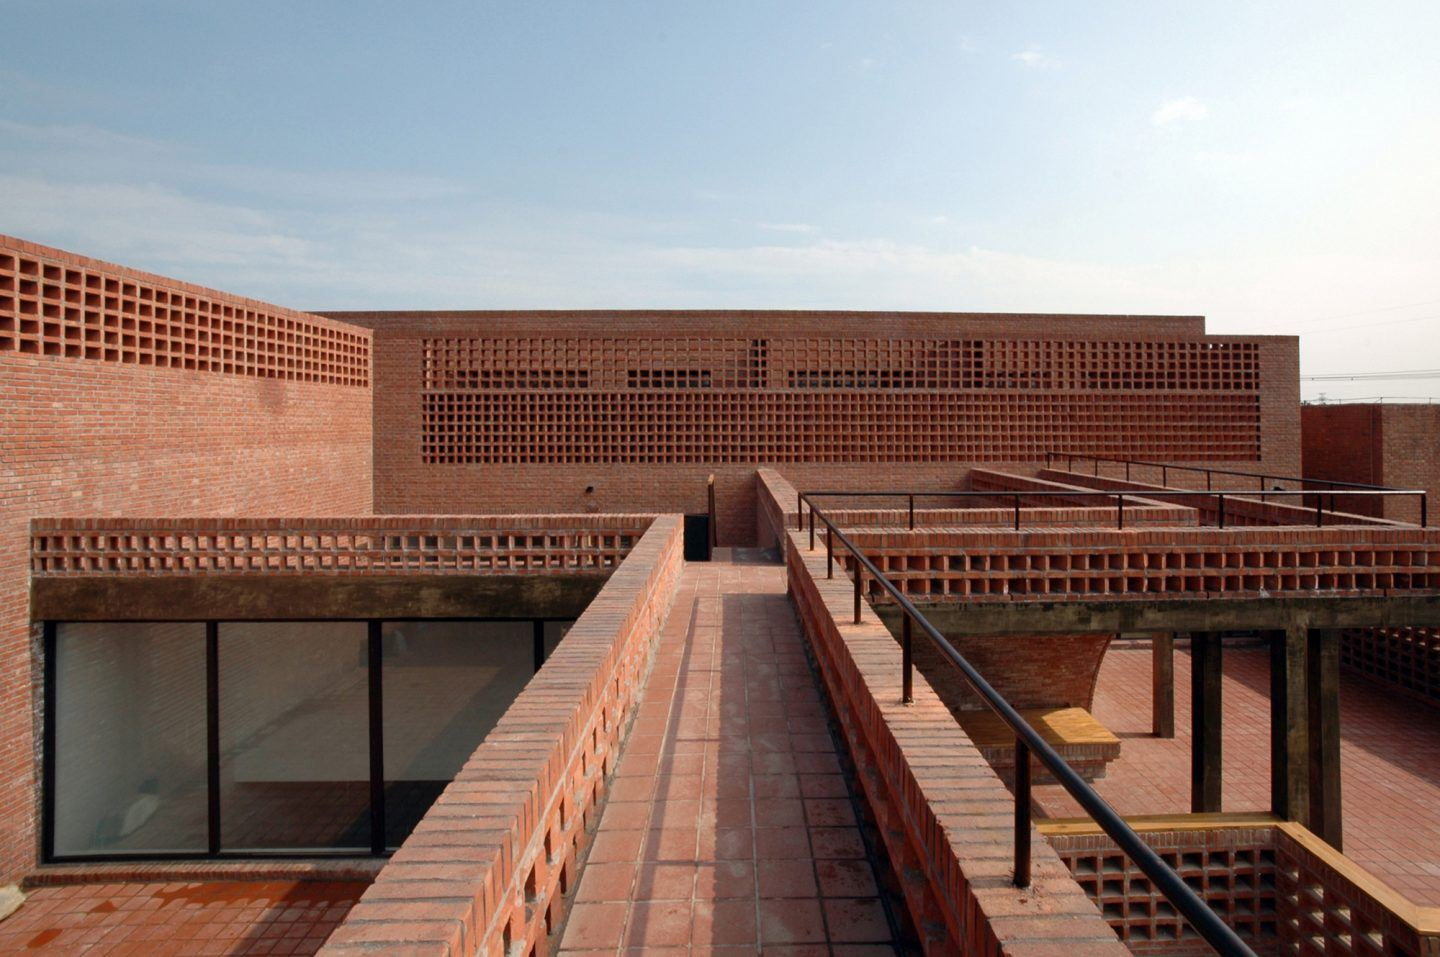 IGNANT-Architecture-Atelier-100s+1-Xiang-Jing-Qu-Guangci-001